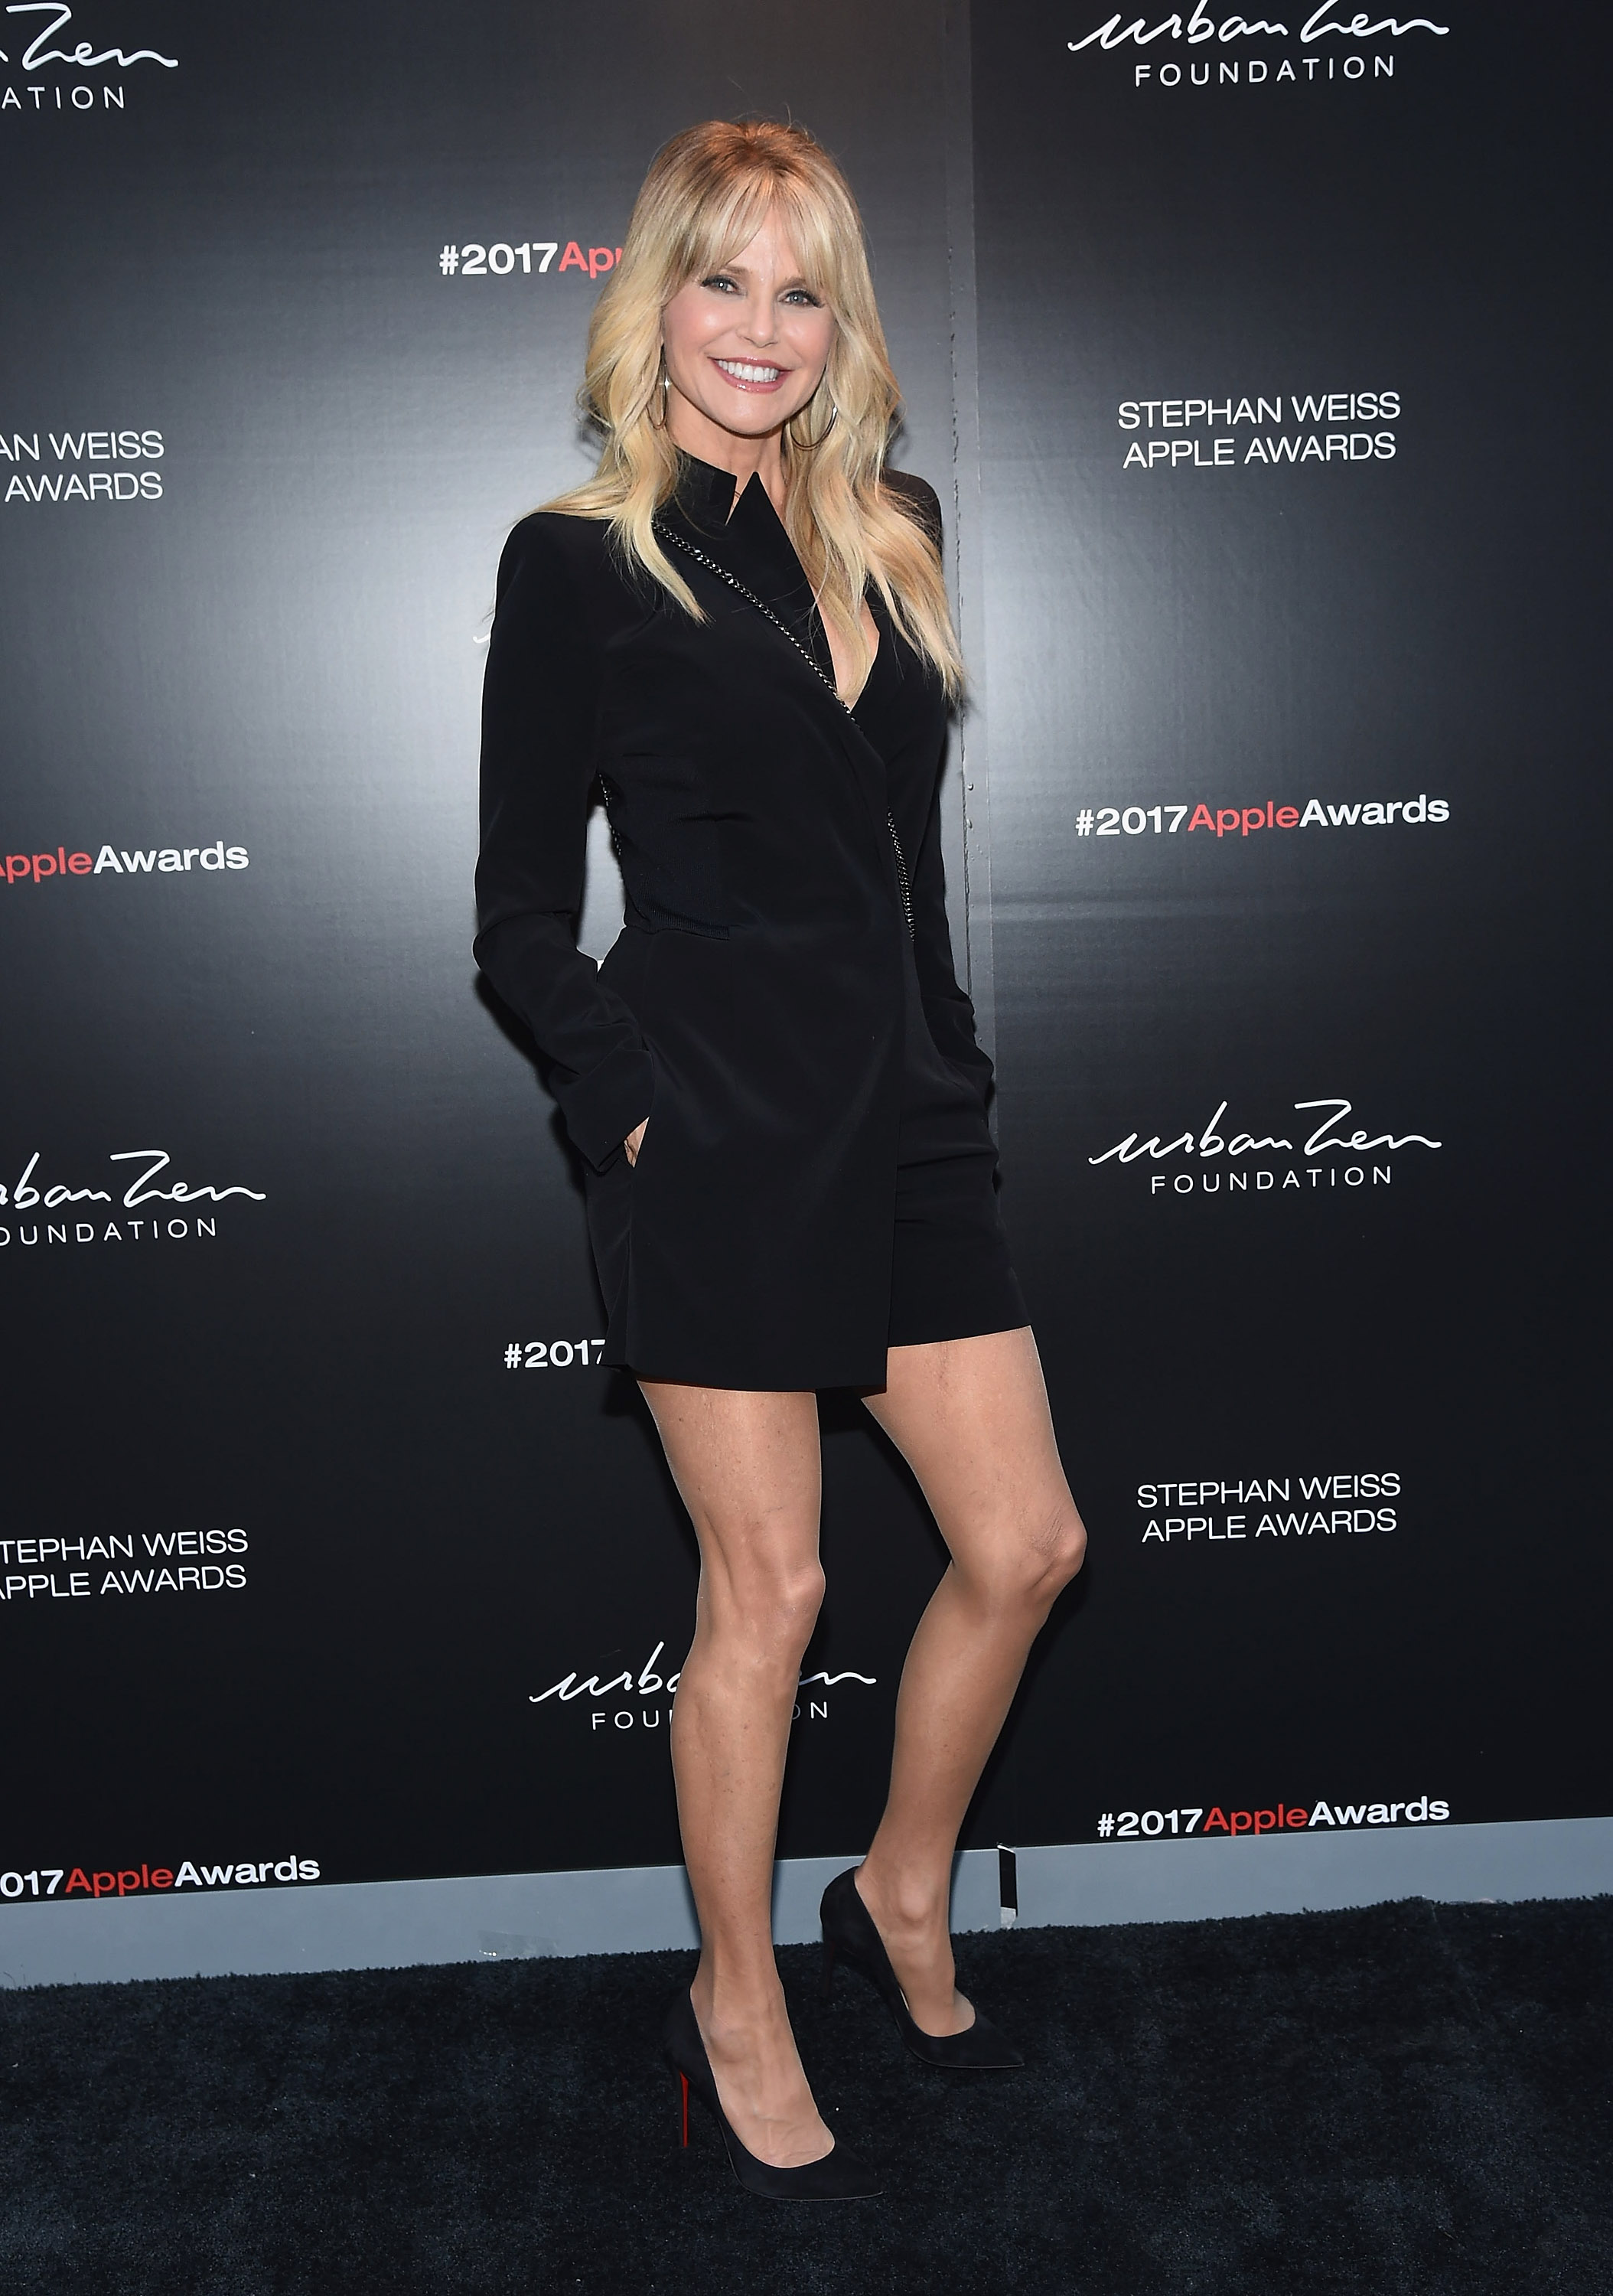 "<p>Christie Brinkley, 63, demonstrated that age is just a number with a display of toned legs at the Stephan Weiss Apple Awards at the Urban Zen Center in New York City today.</p> <p>The awards, organised by designer Donna Karan, honoured former US Secretary of State of First Lady, Hillary Clinton along with businesswoman Nadia Swarovski.</p> <p>Brinkley, a former Vogue cover model and Sports Illustrated star from the '80s pays no attention to her age and recently revealed that she still wears a bikini at every opportunity.</p> <p>""I always put a bikini on and say, 'Oh, it is just to wear around the house. I am not going to go anywhere in it. I just want to get a little color while I am gardening,'"" Brinkley, told <a href=""http://people.com/style/christie-brinkley-bikini-gardens/"" target=""_blank"" draggable=""false"">PeopleStyle</a>. ""I run around trimming my begonias to even everything out so I don't have any tan lines.""</p> <p>The ex-wife of piano man Billy Joel returned to the pages of <em>Sports Illustrated</em> this year alongside daughters Alexa Ray Joel, 31, and Sailor Brinkley Cook, 18.</p> <p>Posting the incredible image to Instagram, Brinkley thanked Sports Illustrated ""for sending the powerful message that good things come in packages of every size and we do not come with an expiration date.""</p> See Christie and other ageless beauties here."